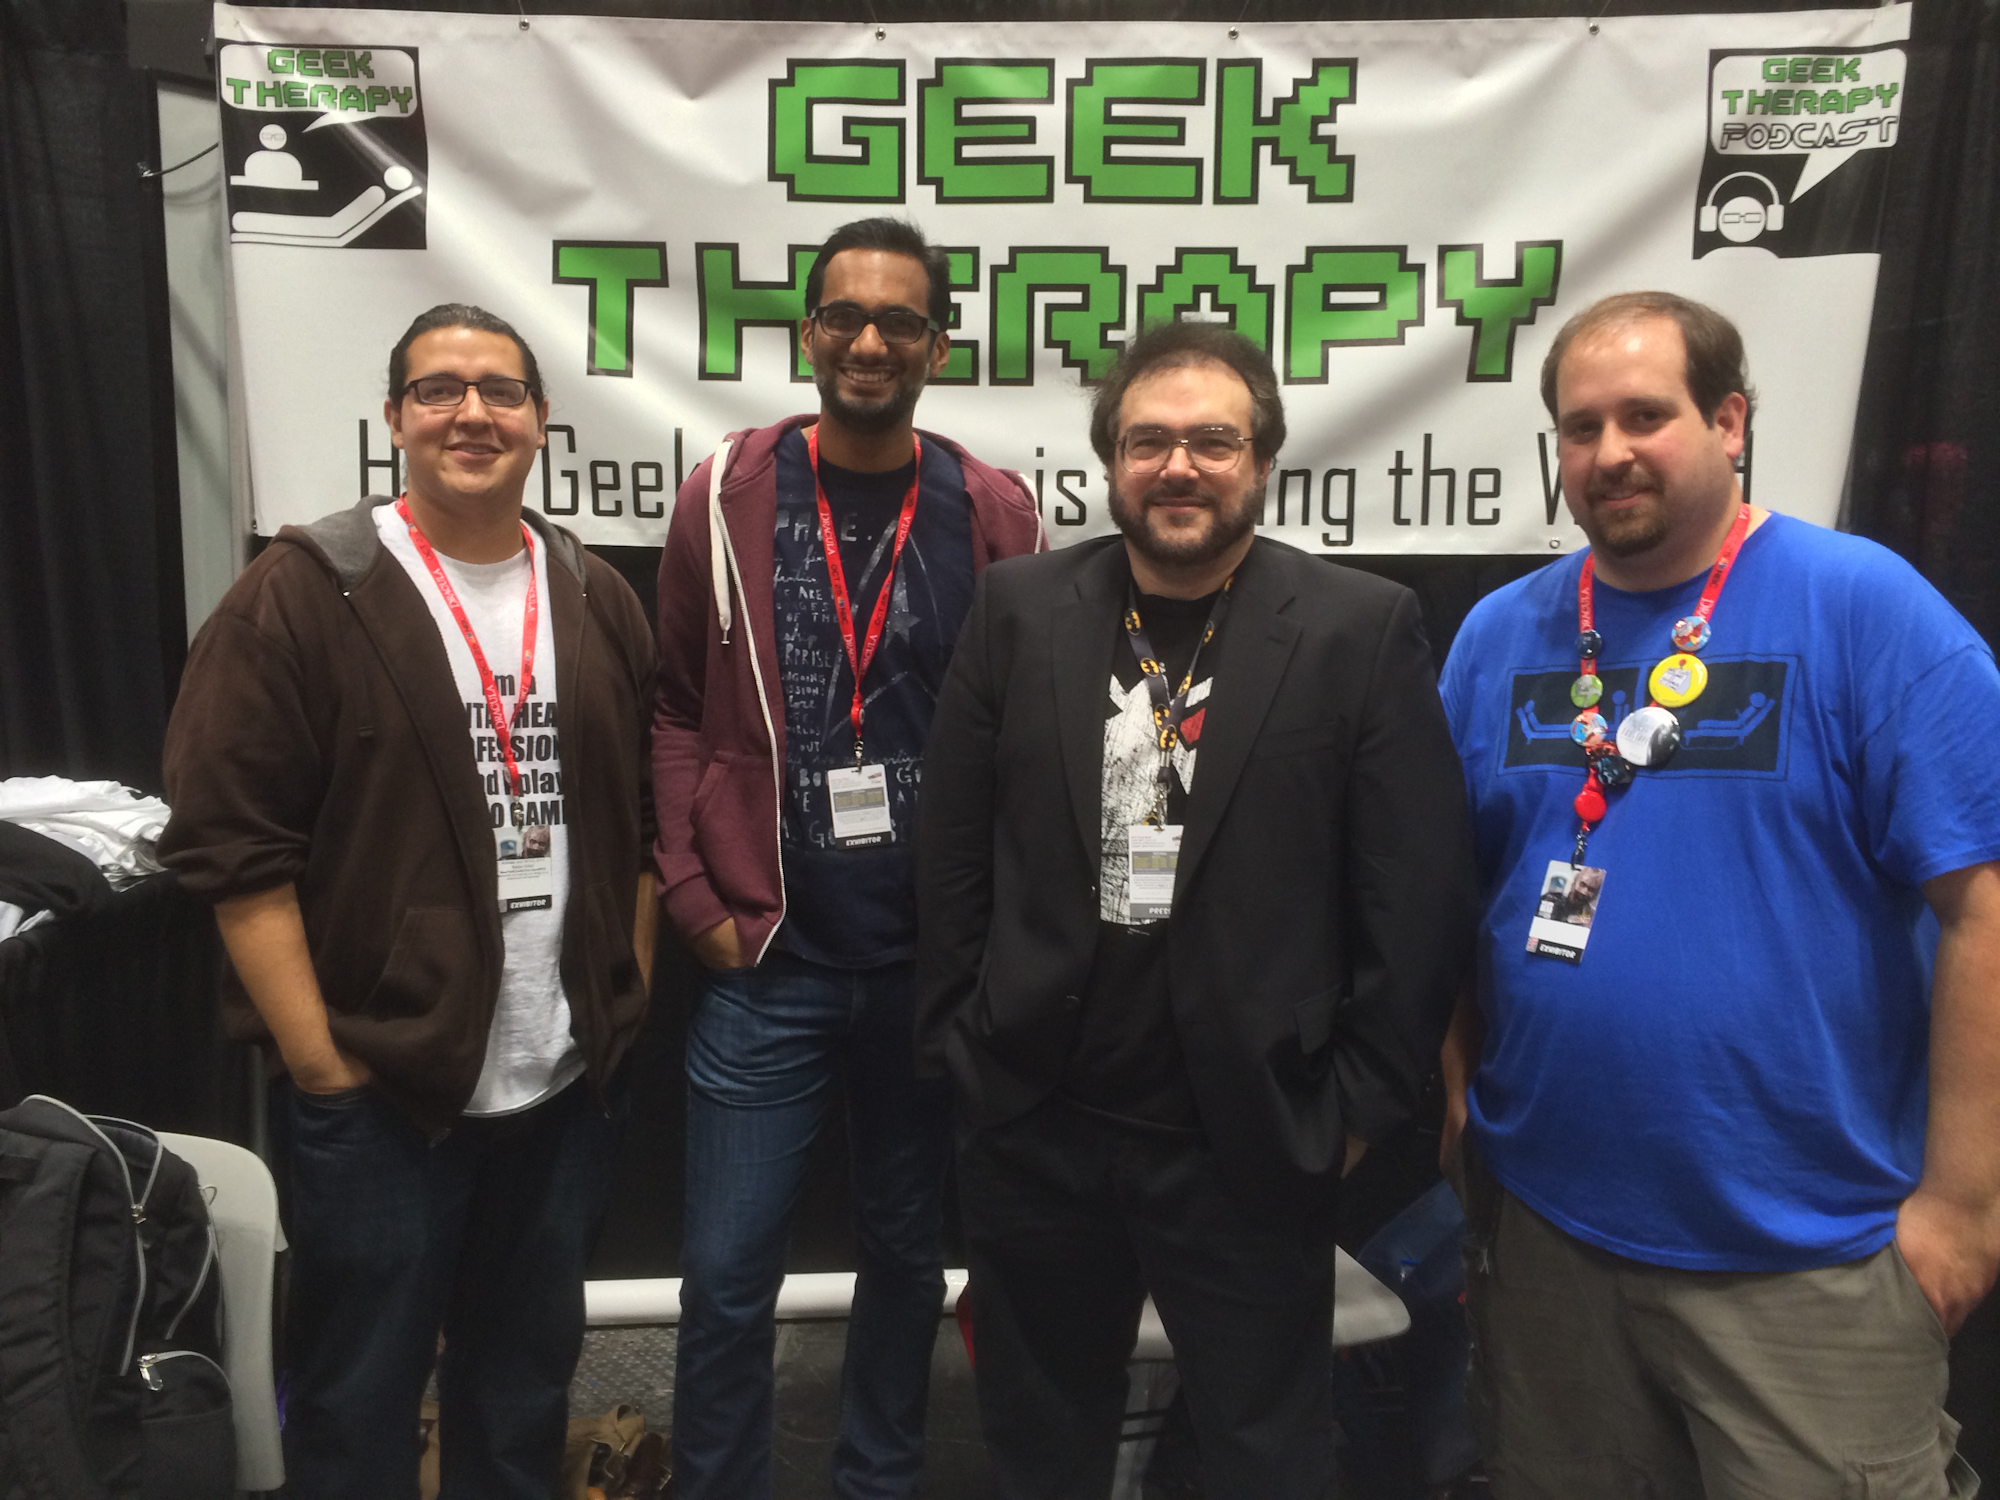 Hanging out with the Cortex Crusaders Josué Cardona, Travis Langley, and Steve Kuniak at New York Comic Con 2013.